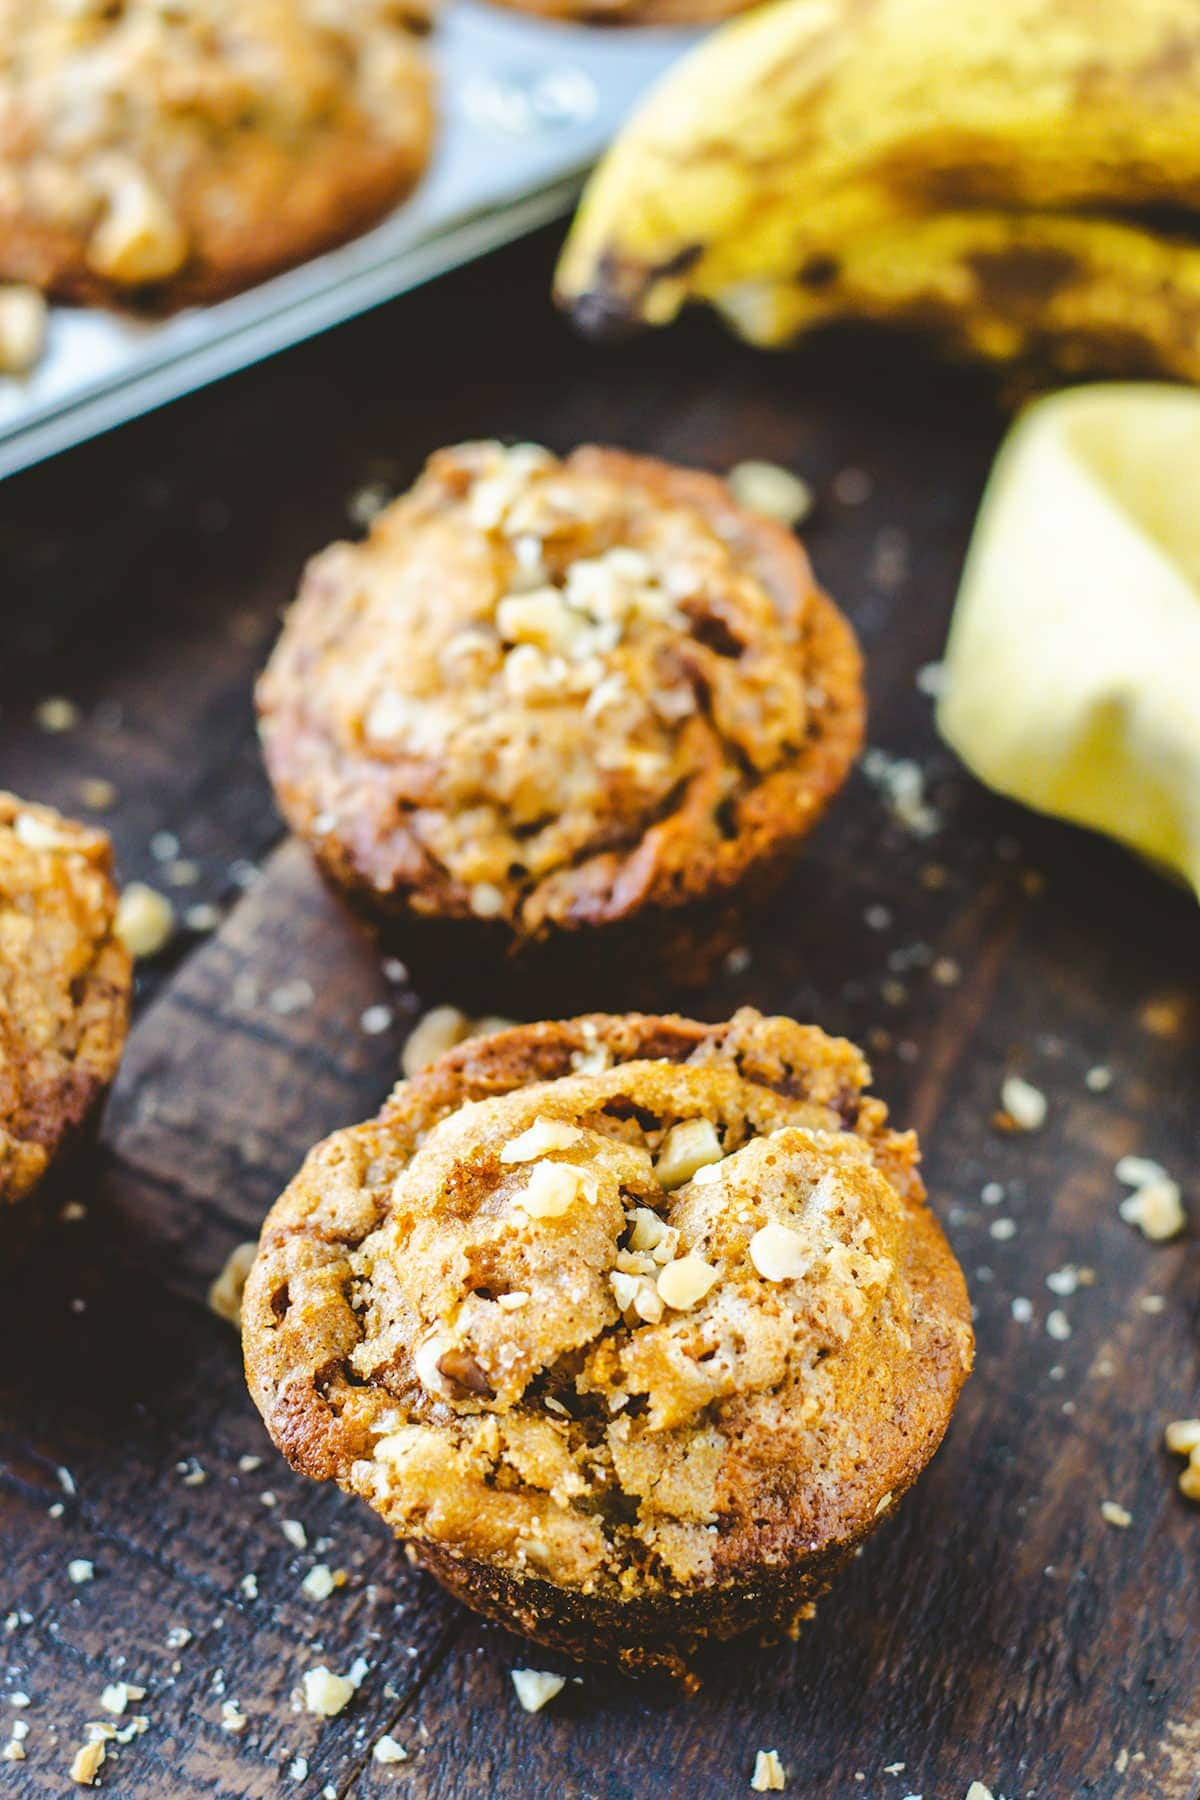 Banana Muffins topped with walnuts on a rustic tray.